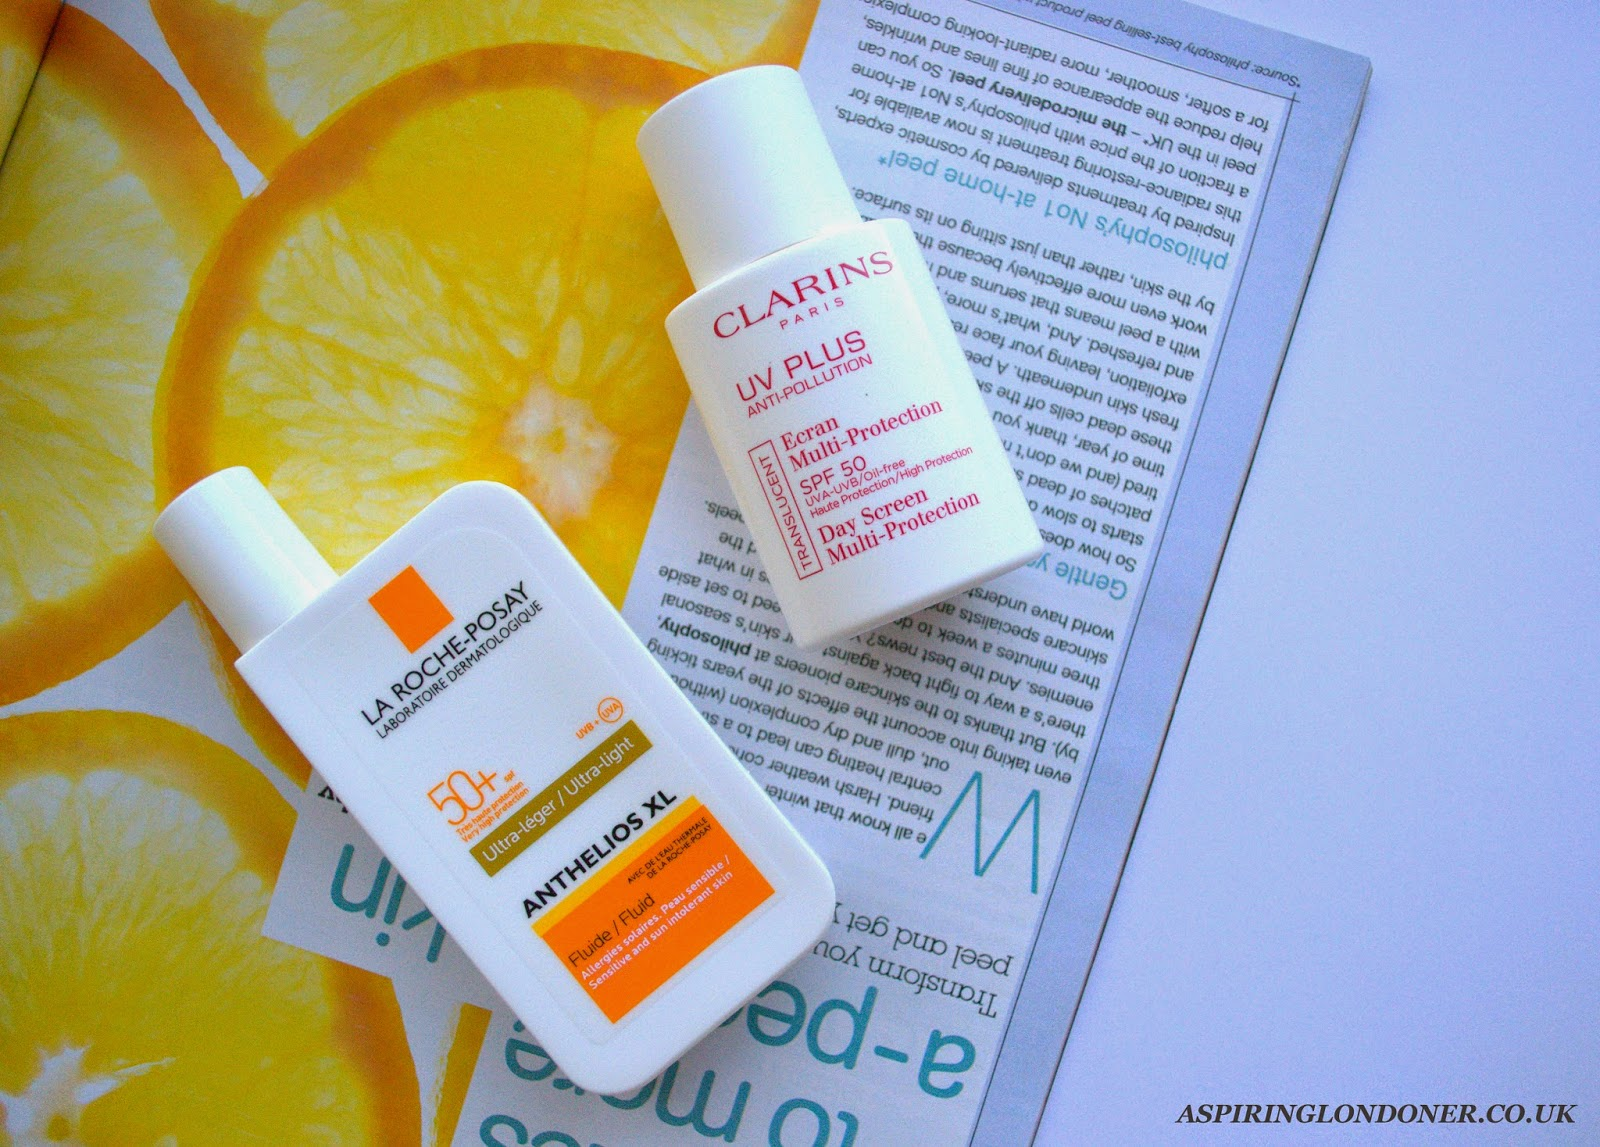 Facial SPF ft. Clarins UV Plus SPF50 & La Roche-Posay Anthelios XL Fluid - Aspiring Londoner